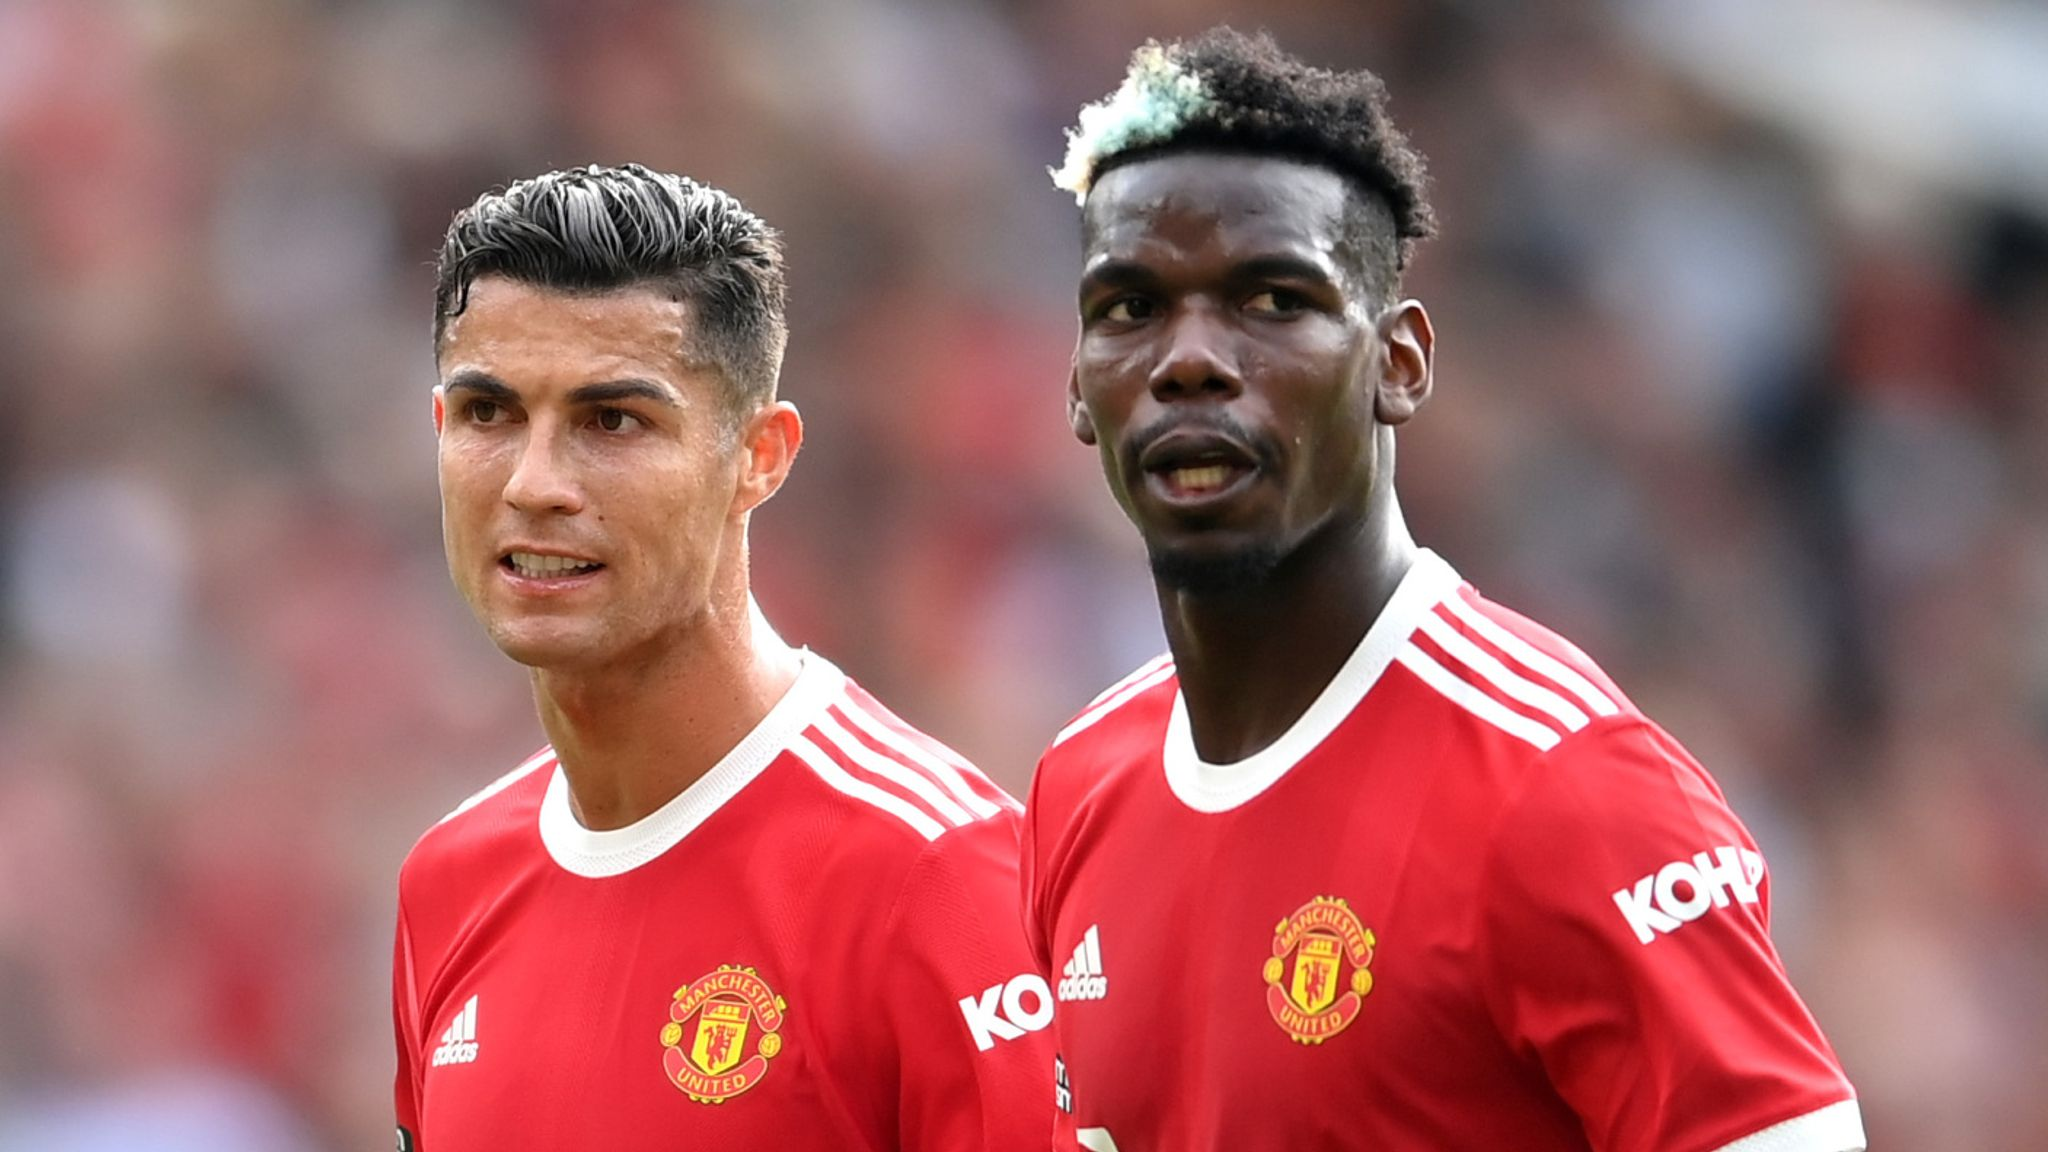 Paul Pogba: Manchester United midfielder more open to signing contract extension after impressive summer recruitment   Football News   Sky Sports